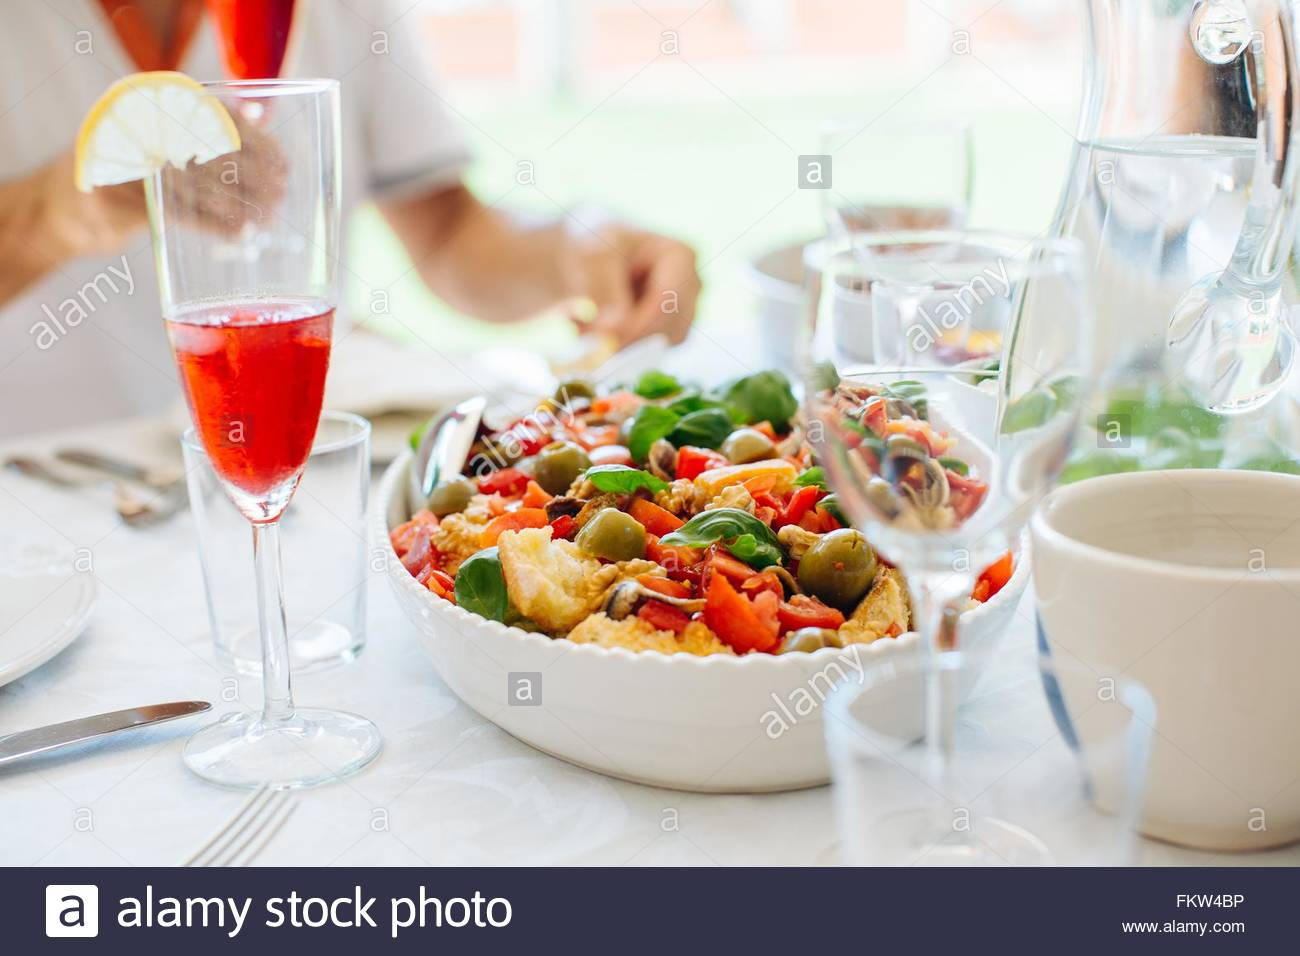 Man eating 'friselle' lunch from southern Italy - Stock Image